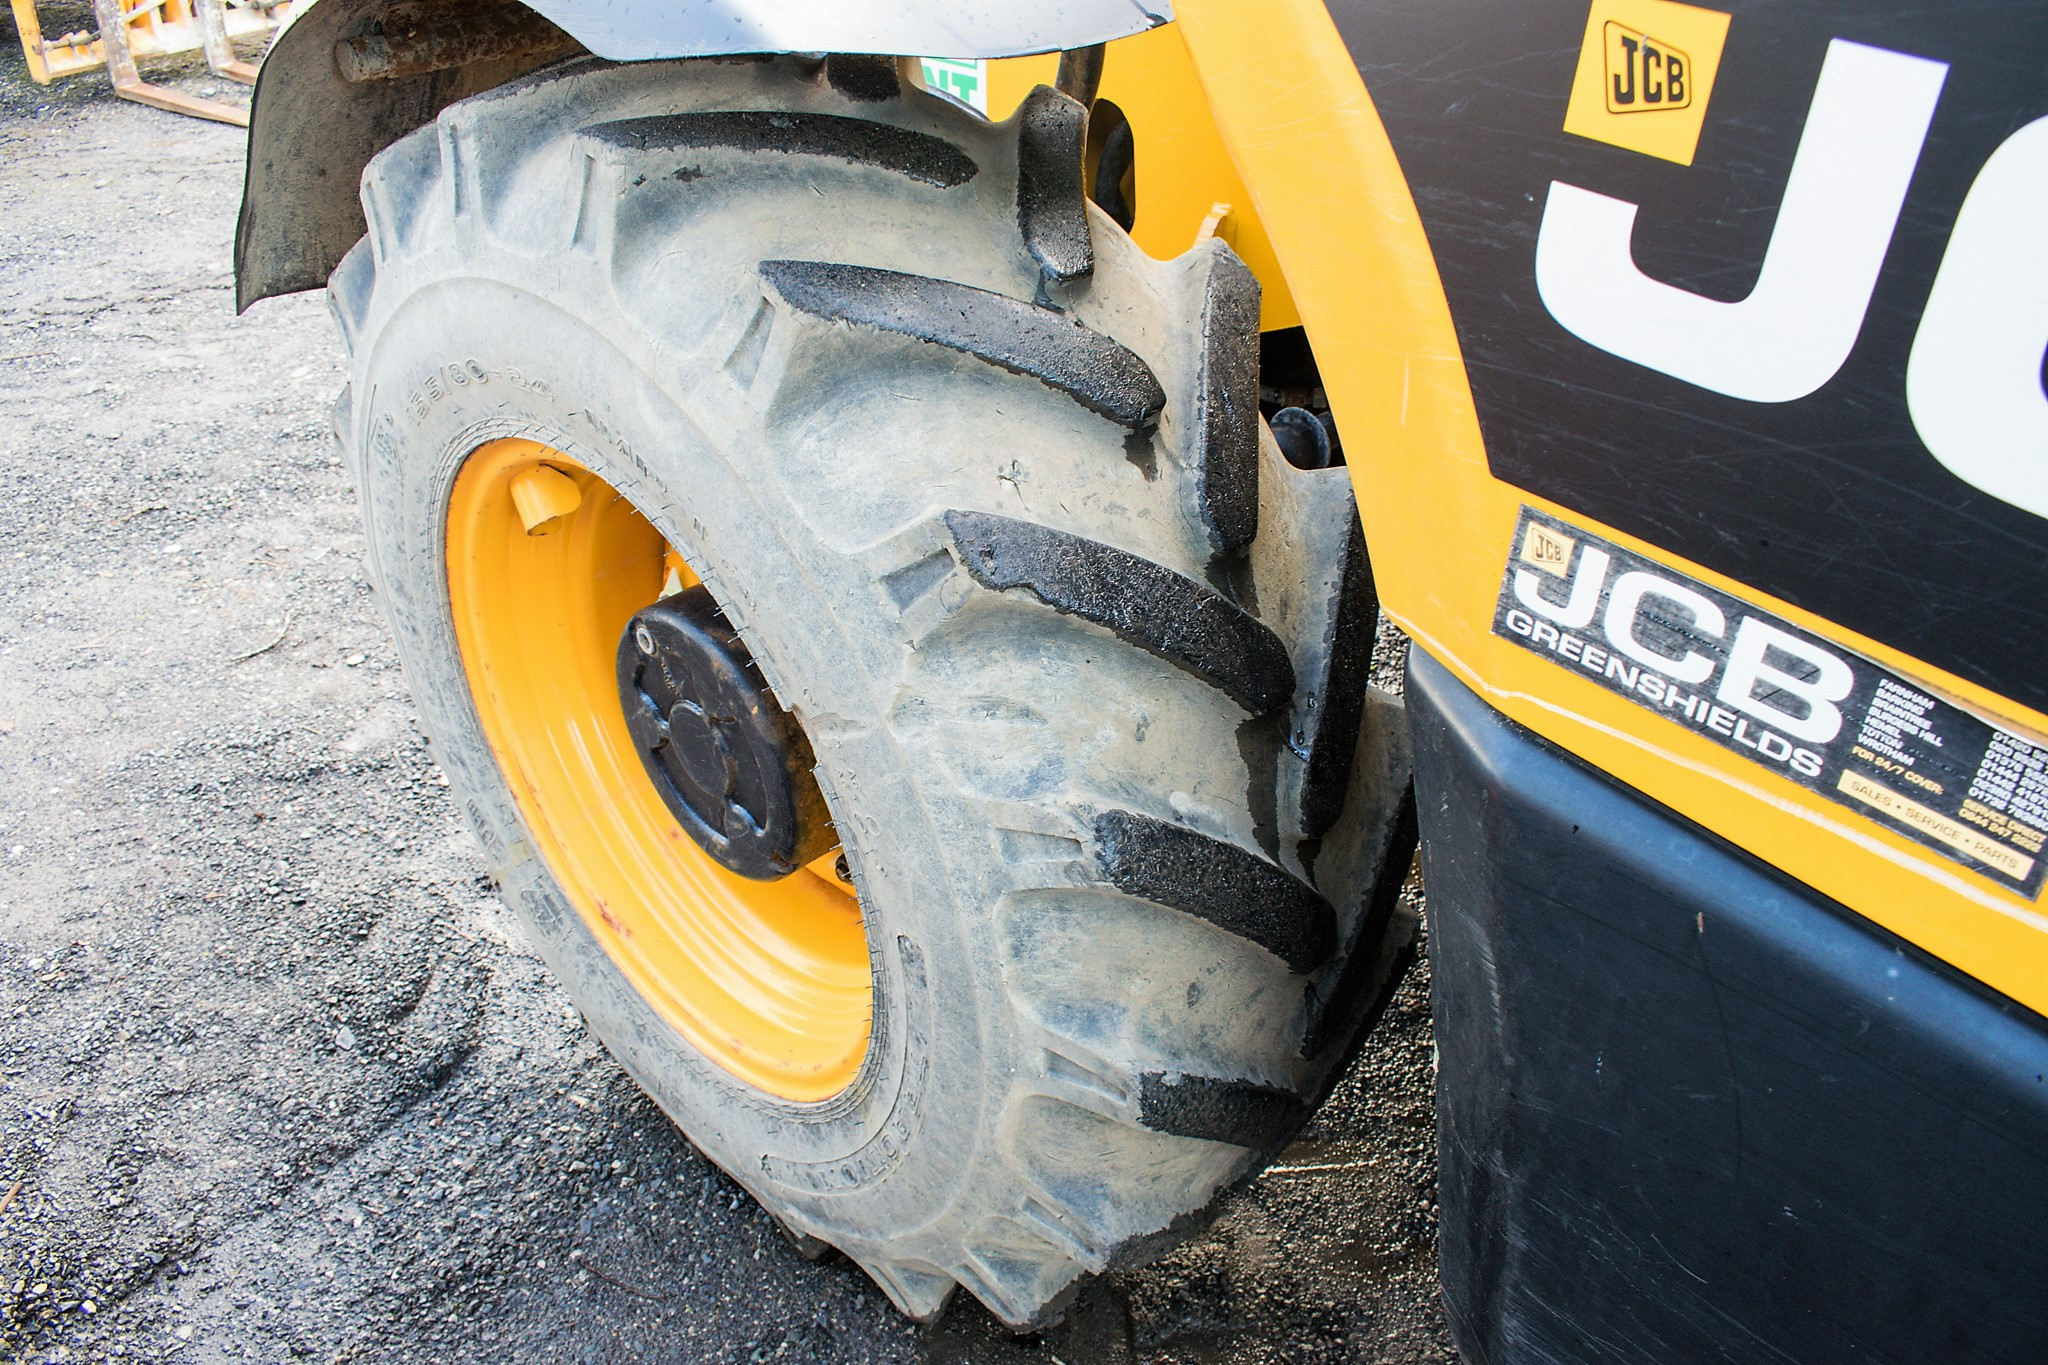 JCB 531-70 7 metre telescopic handler Year: 2013 S/N: 2176575 Reg No: MX13 PHY Recorded Hours: - Image 11 of 19